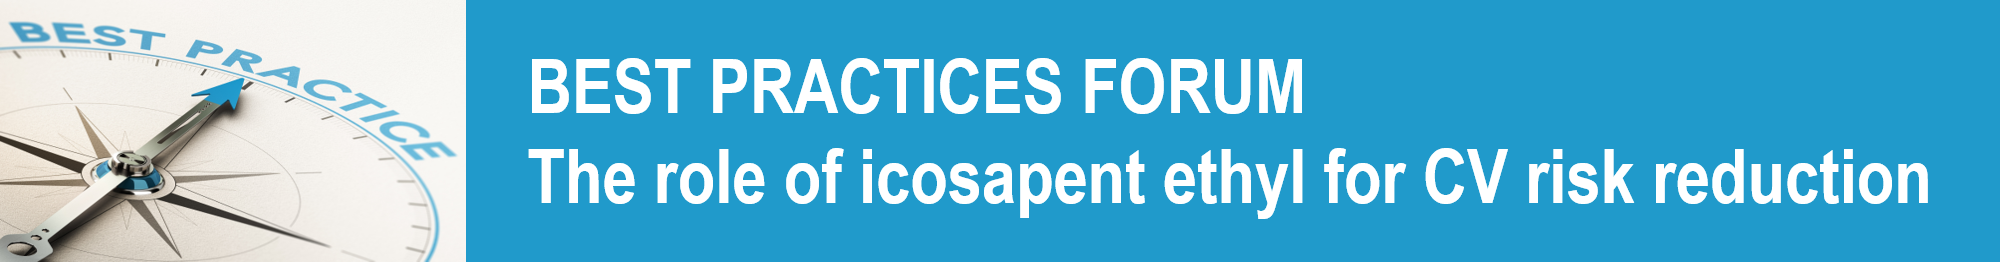 Best Practices Forum: The role of icosapent ethyl for CV risk reduction banner